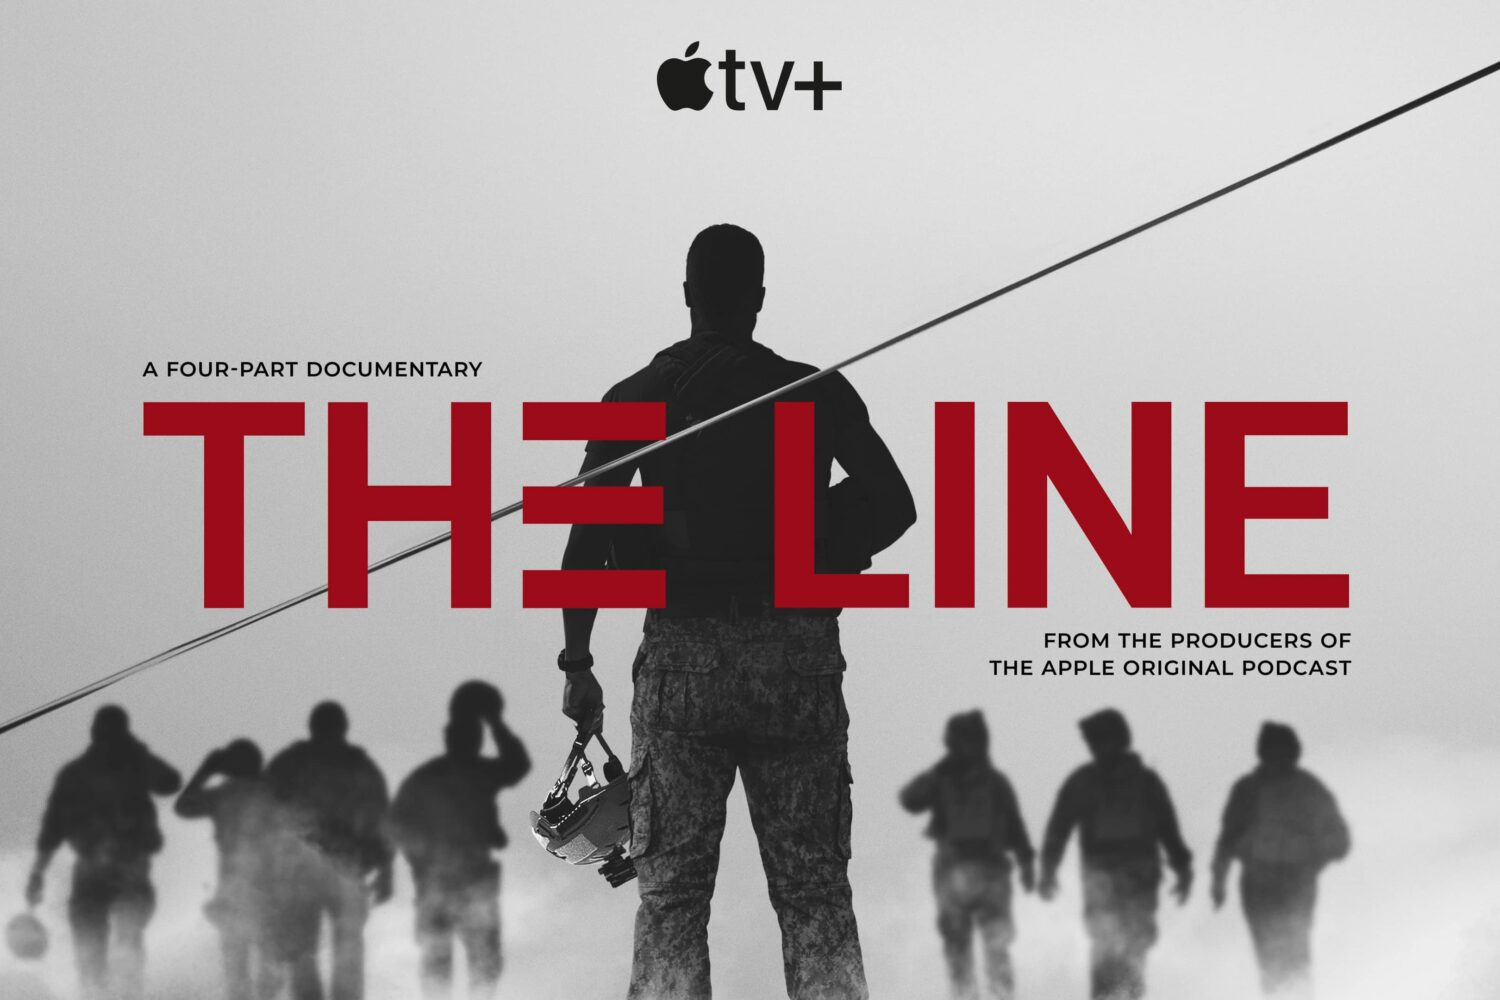 """Poster artwork for the Apple TV+ documentary called """"The Line"""""""